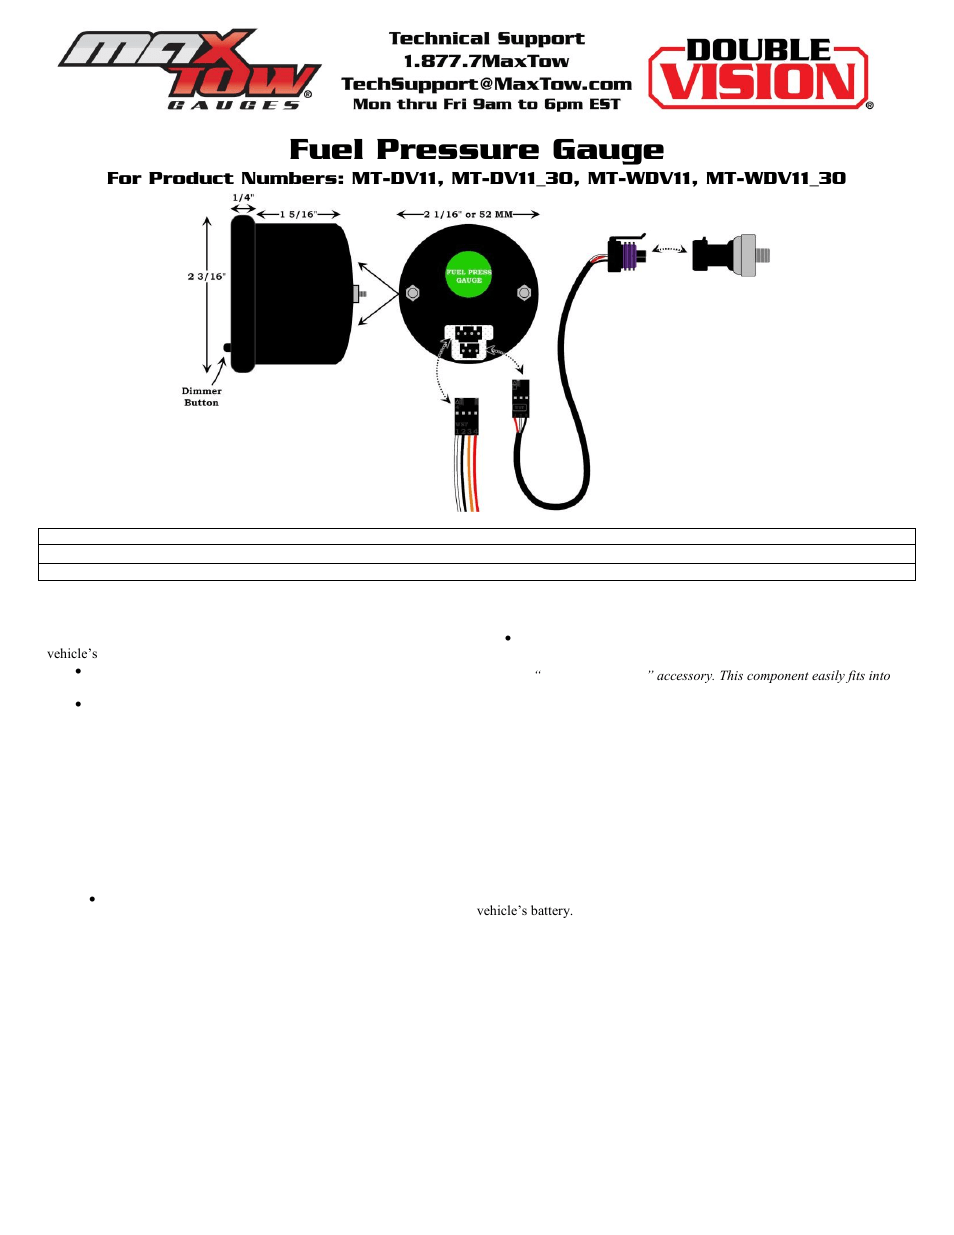 hight resolution of glowshift maxtow series fuel pressure gauge user manual 3 pages also for 100 psi fuel pressure gauge 30 psi fuel pressure gauge